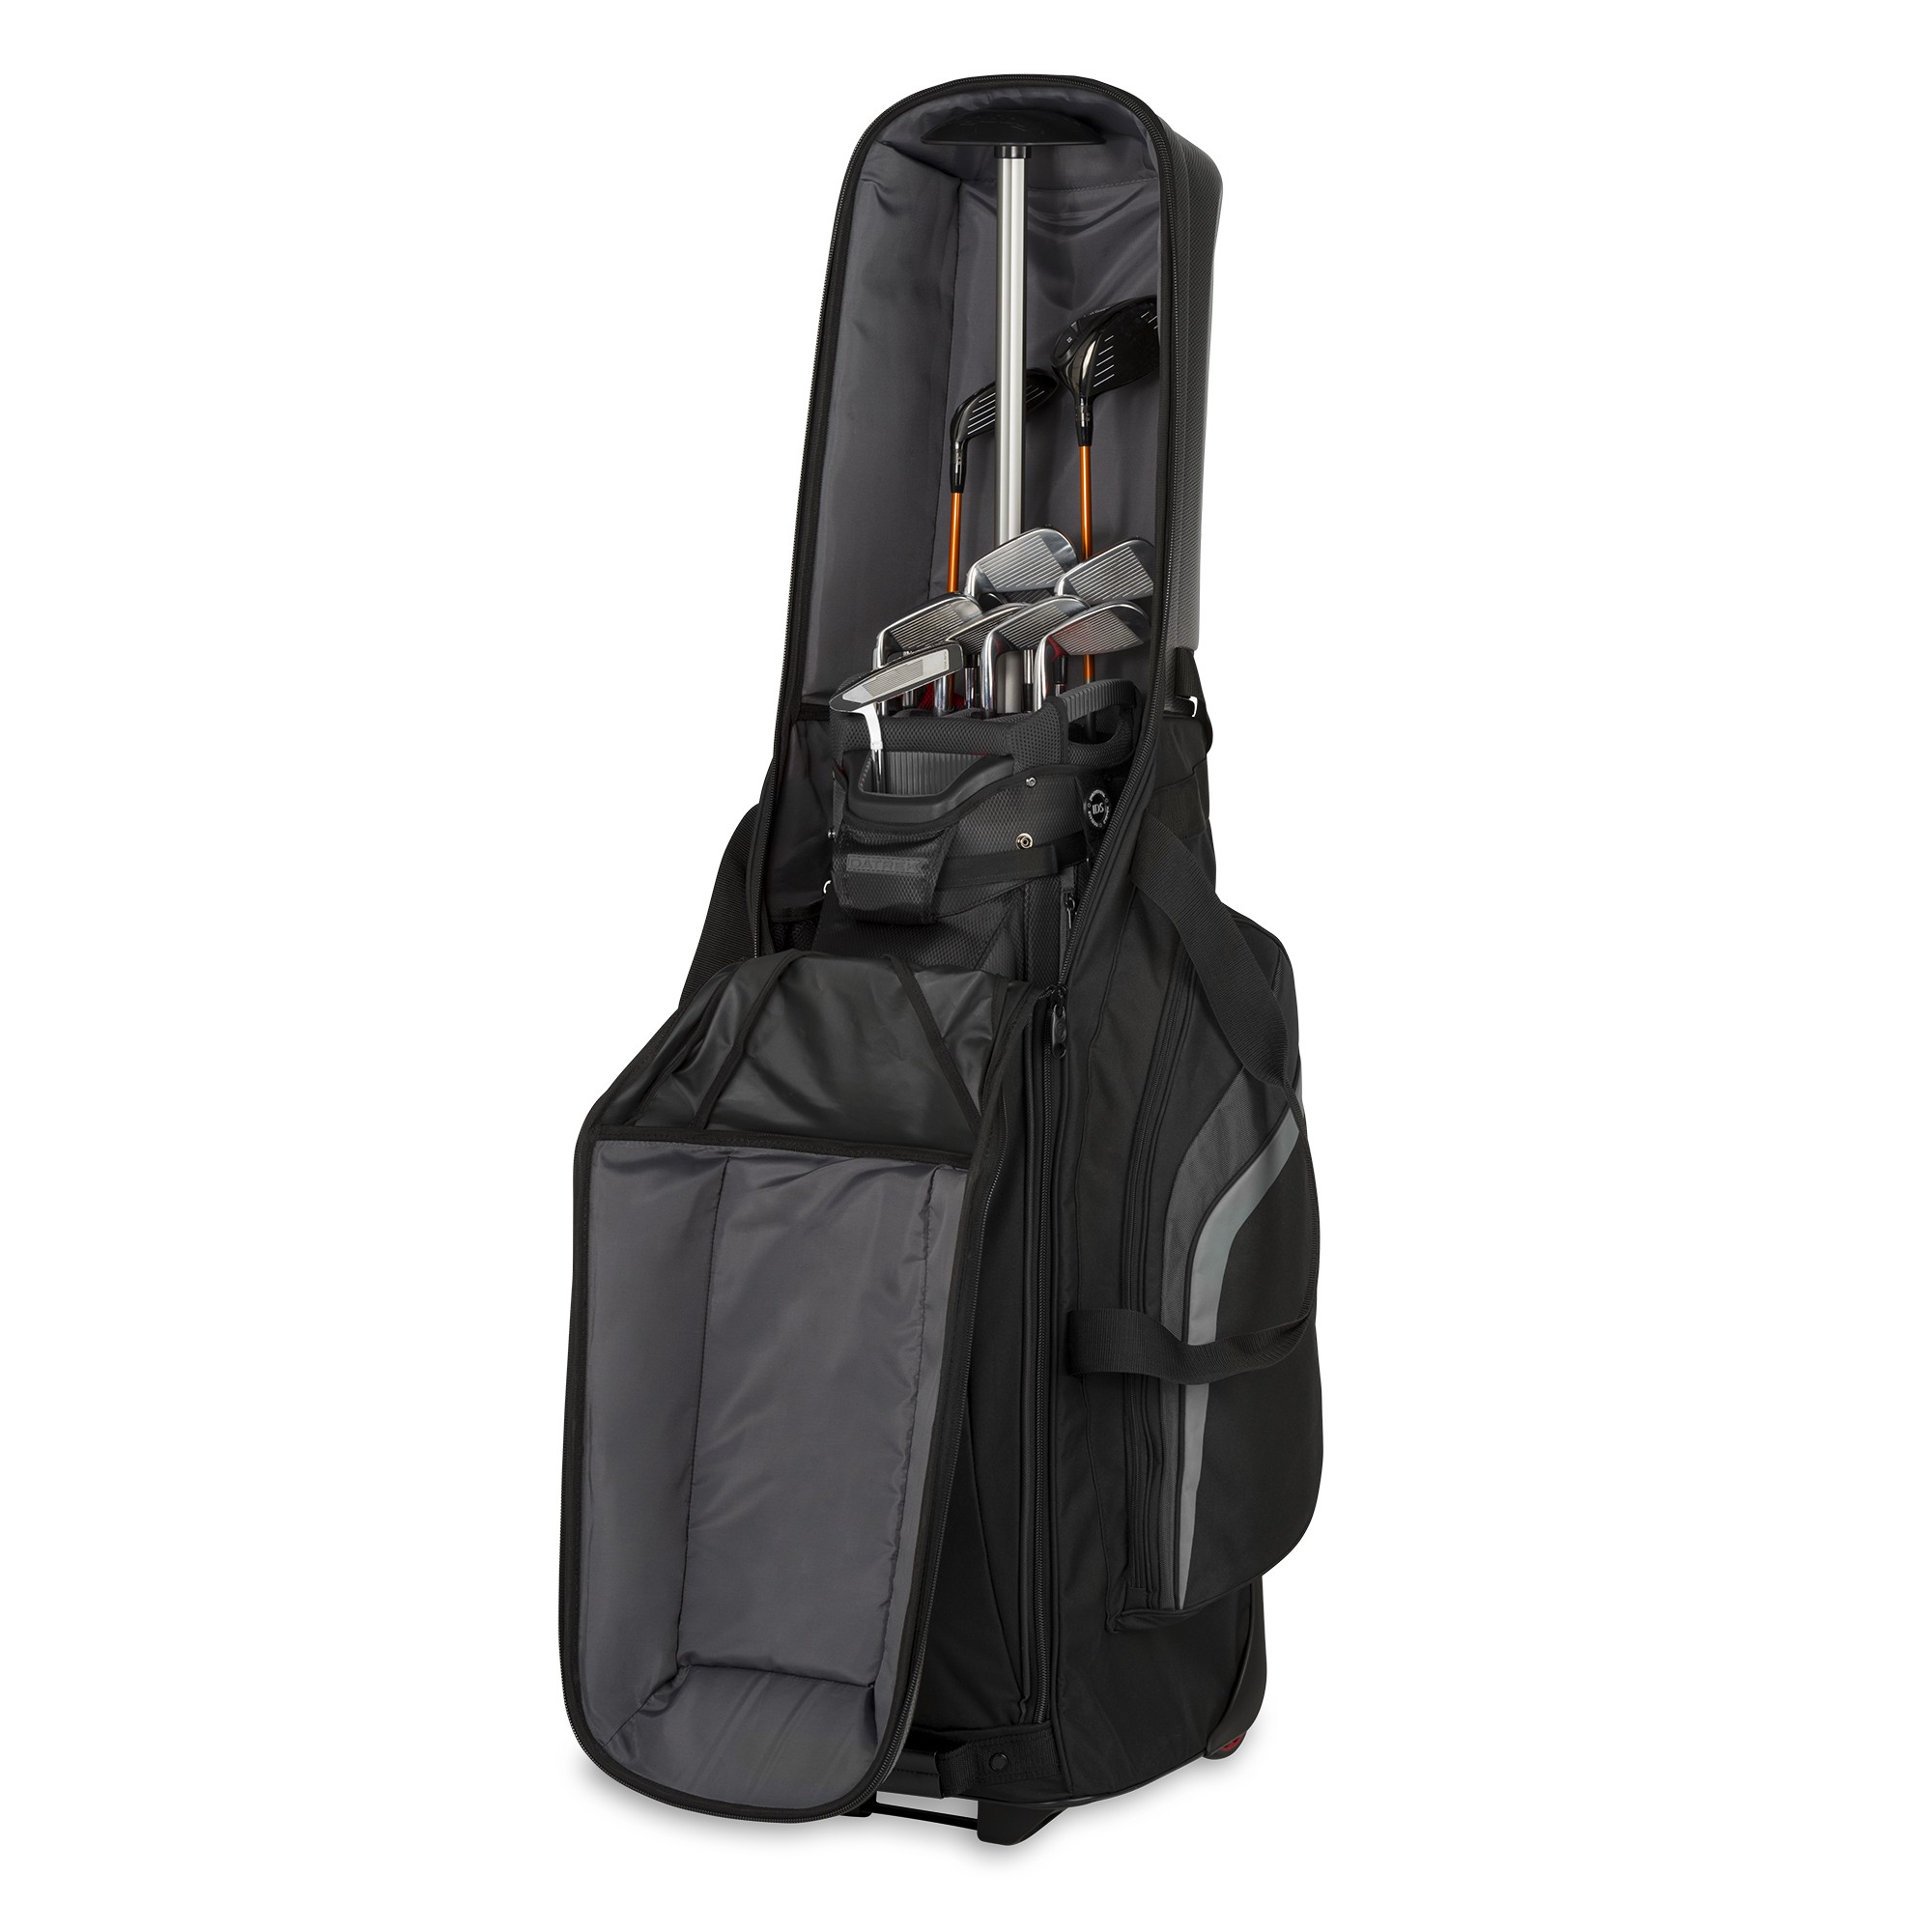 BagBoy Golf T-10 Hard Topped Wheeled Travel Cover Flight Bag  - Black/Graphite